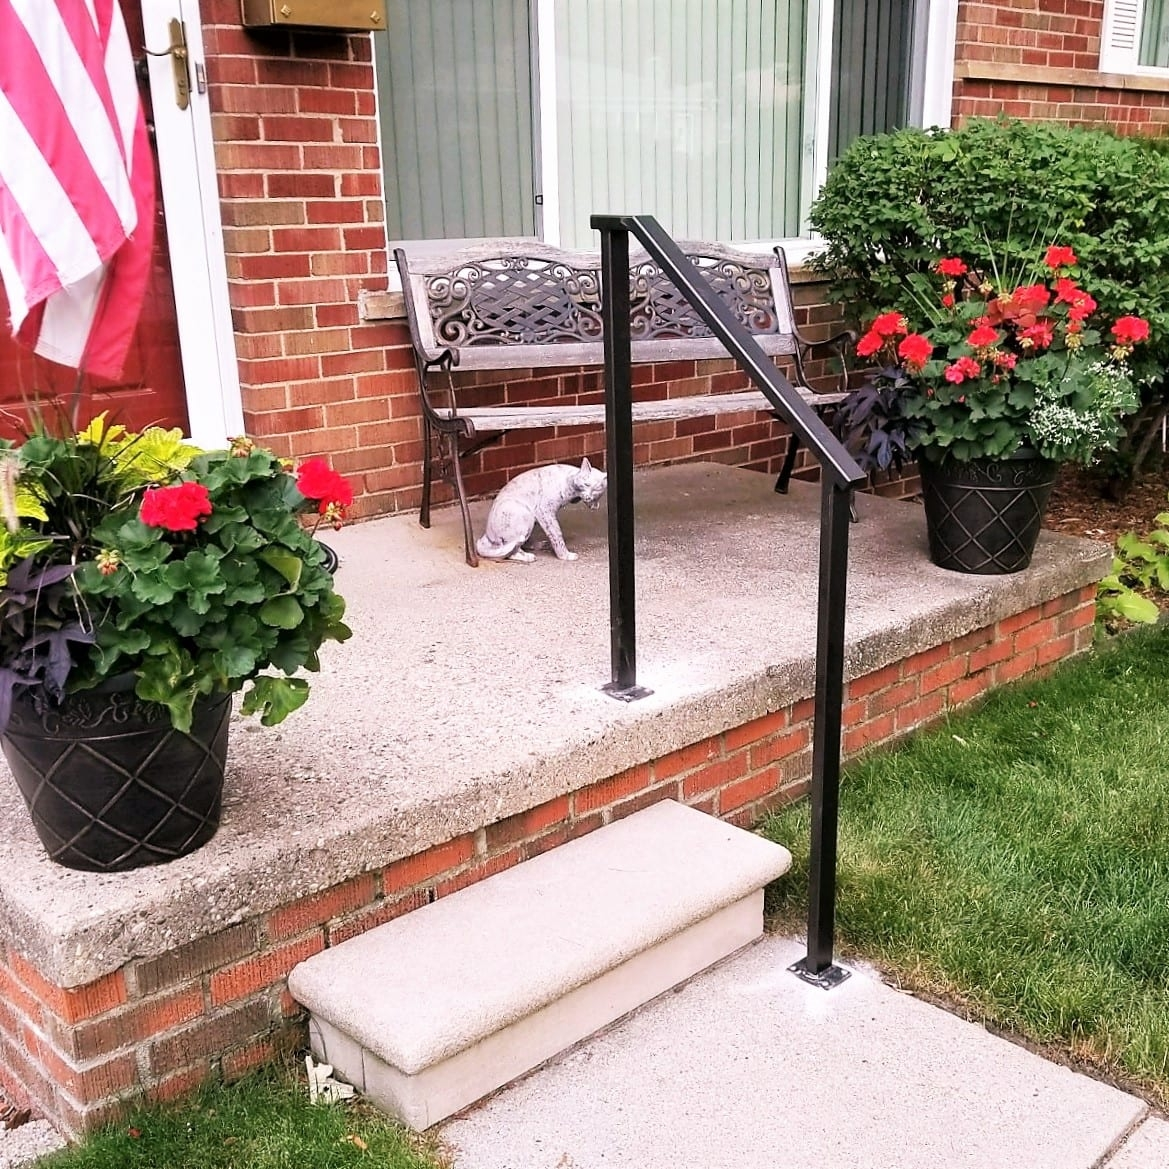 Simple Bronze Porch Step Rail Great Lakes Metal Fabrication   Handrails For Porch Steps   Deck   Simple   Railing   Temporary   Interior